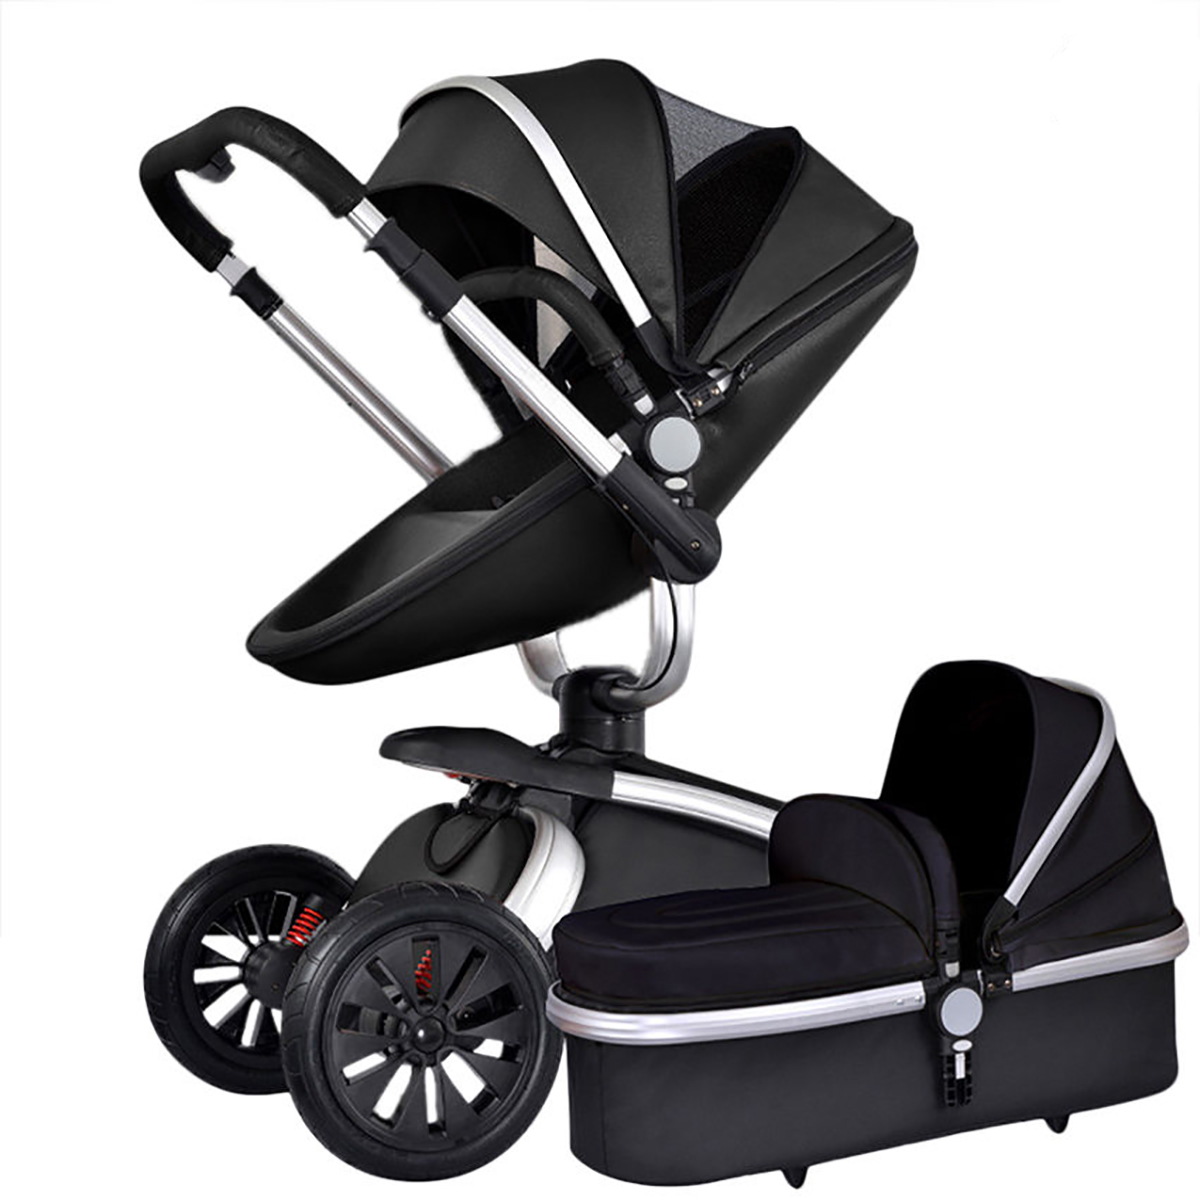 Baby-Stroller-leather-Carriage-Infant-Foldable-Travel-System-Pram-Pushchair-Car